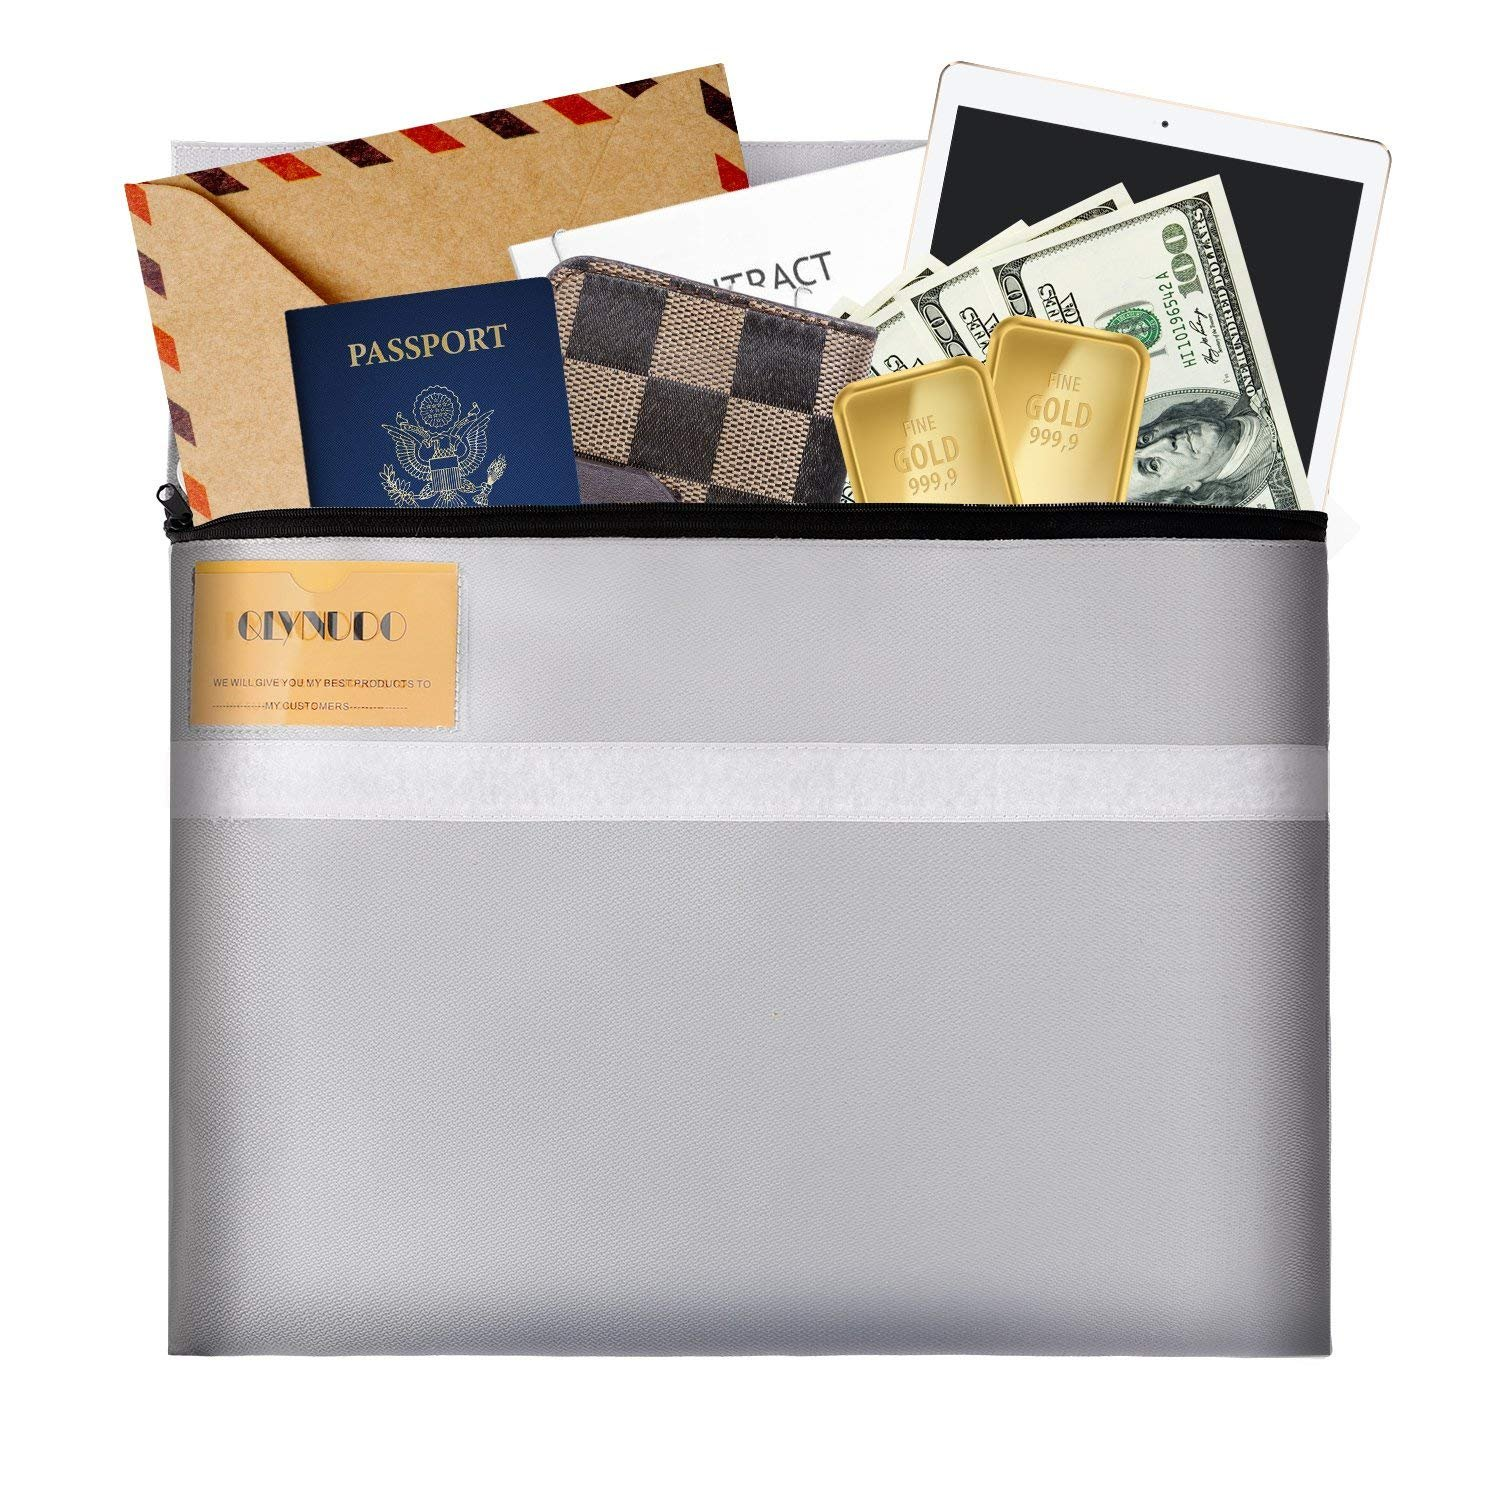 Fireproof Document Bag 15.5''X12.5'', fire Proof Safe Bag No Itchy Silicone Coated fire Resistant Money File Storage bag